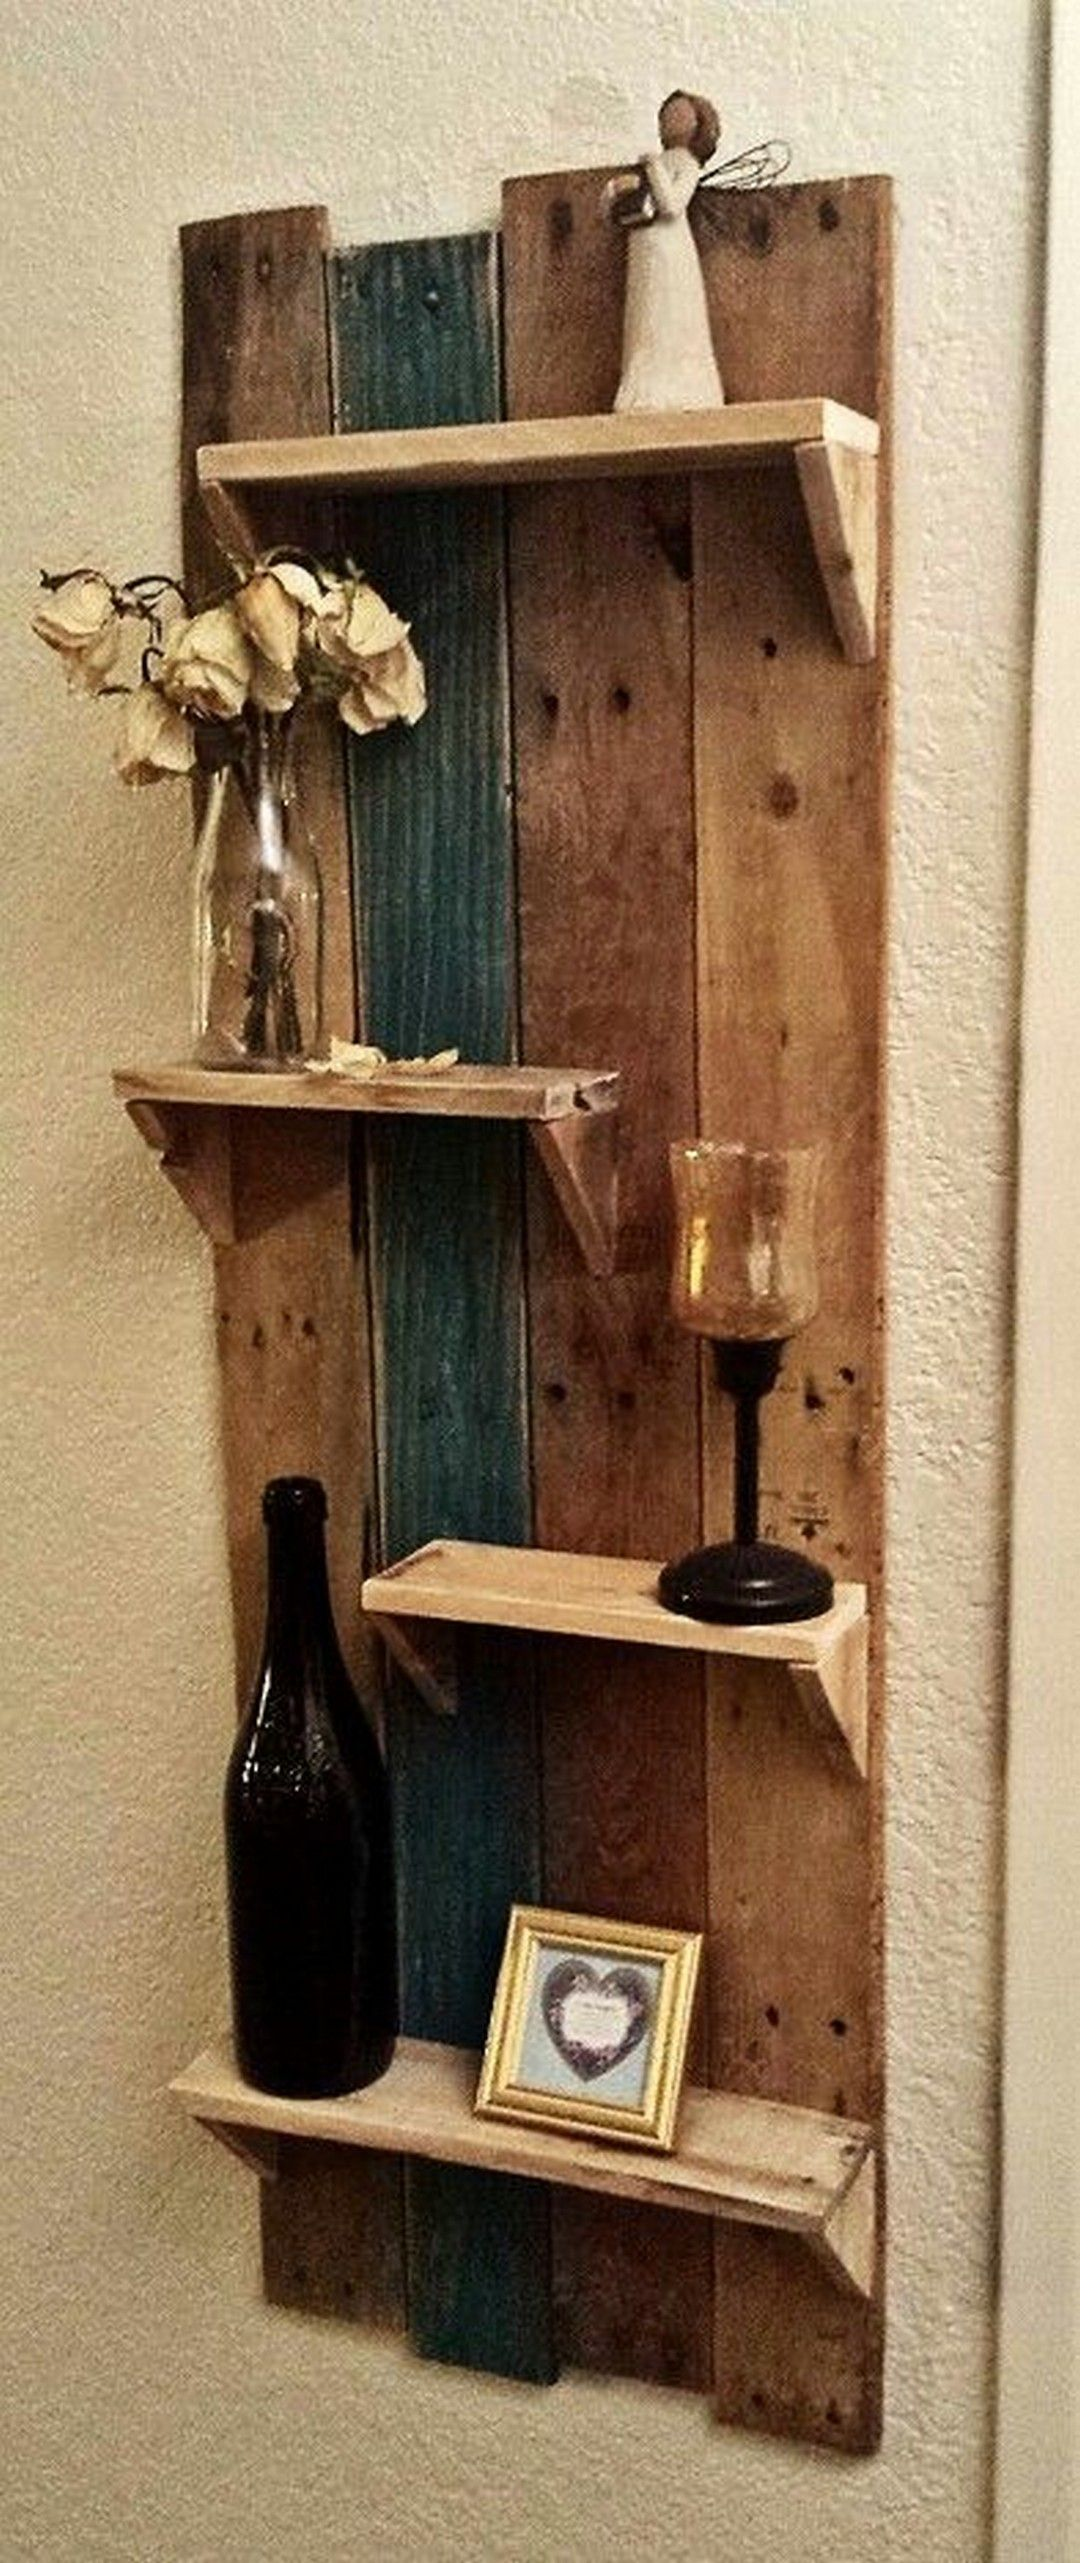 Superb Wood Pallet Decorating For Your Small Room Abchomedecor Pallet Wood Shelves Wooden Pallet Shelves Wood Pallet Projects